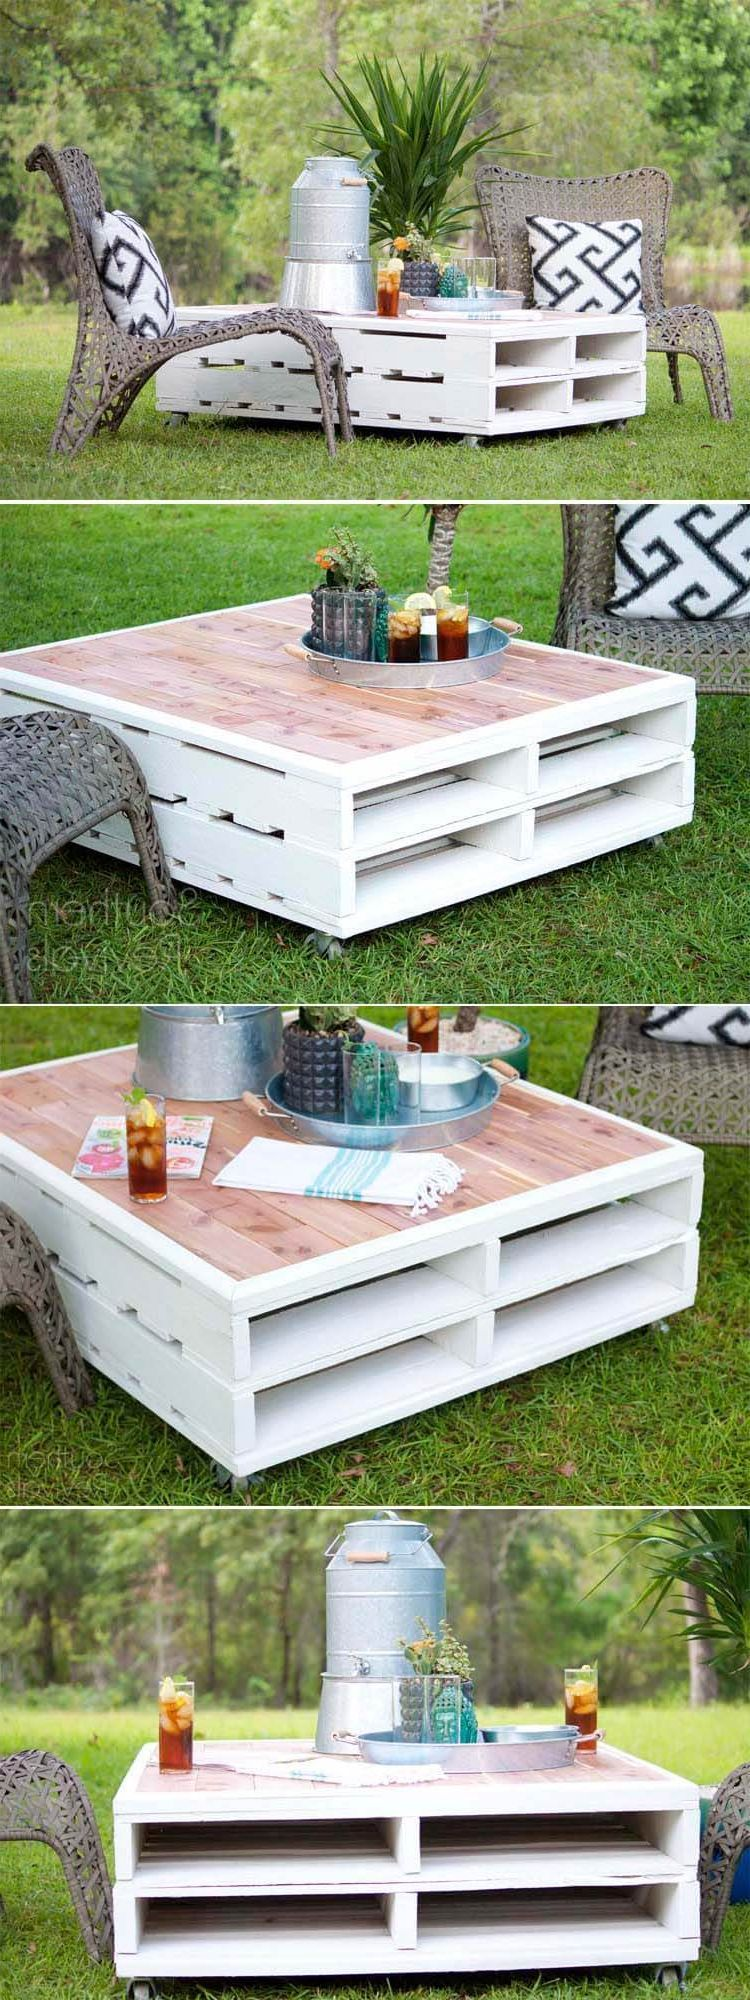 Diy Making Your Own Pallet Patio Furniture Decor Around The World In 2021 Rustic Coffee Tables Pallet Furniture Outdoor Pallet Outdoor